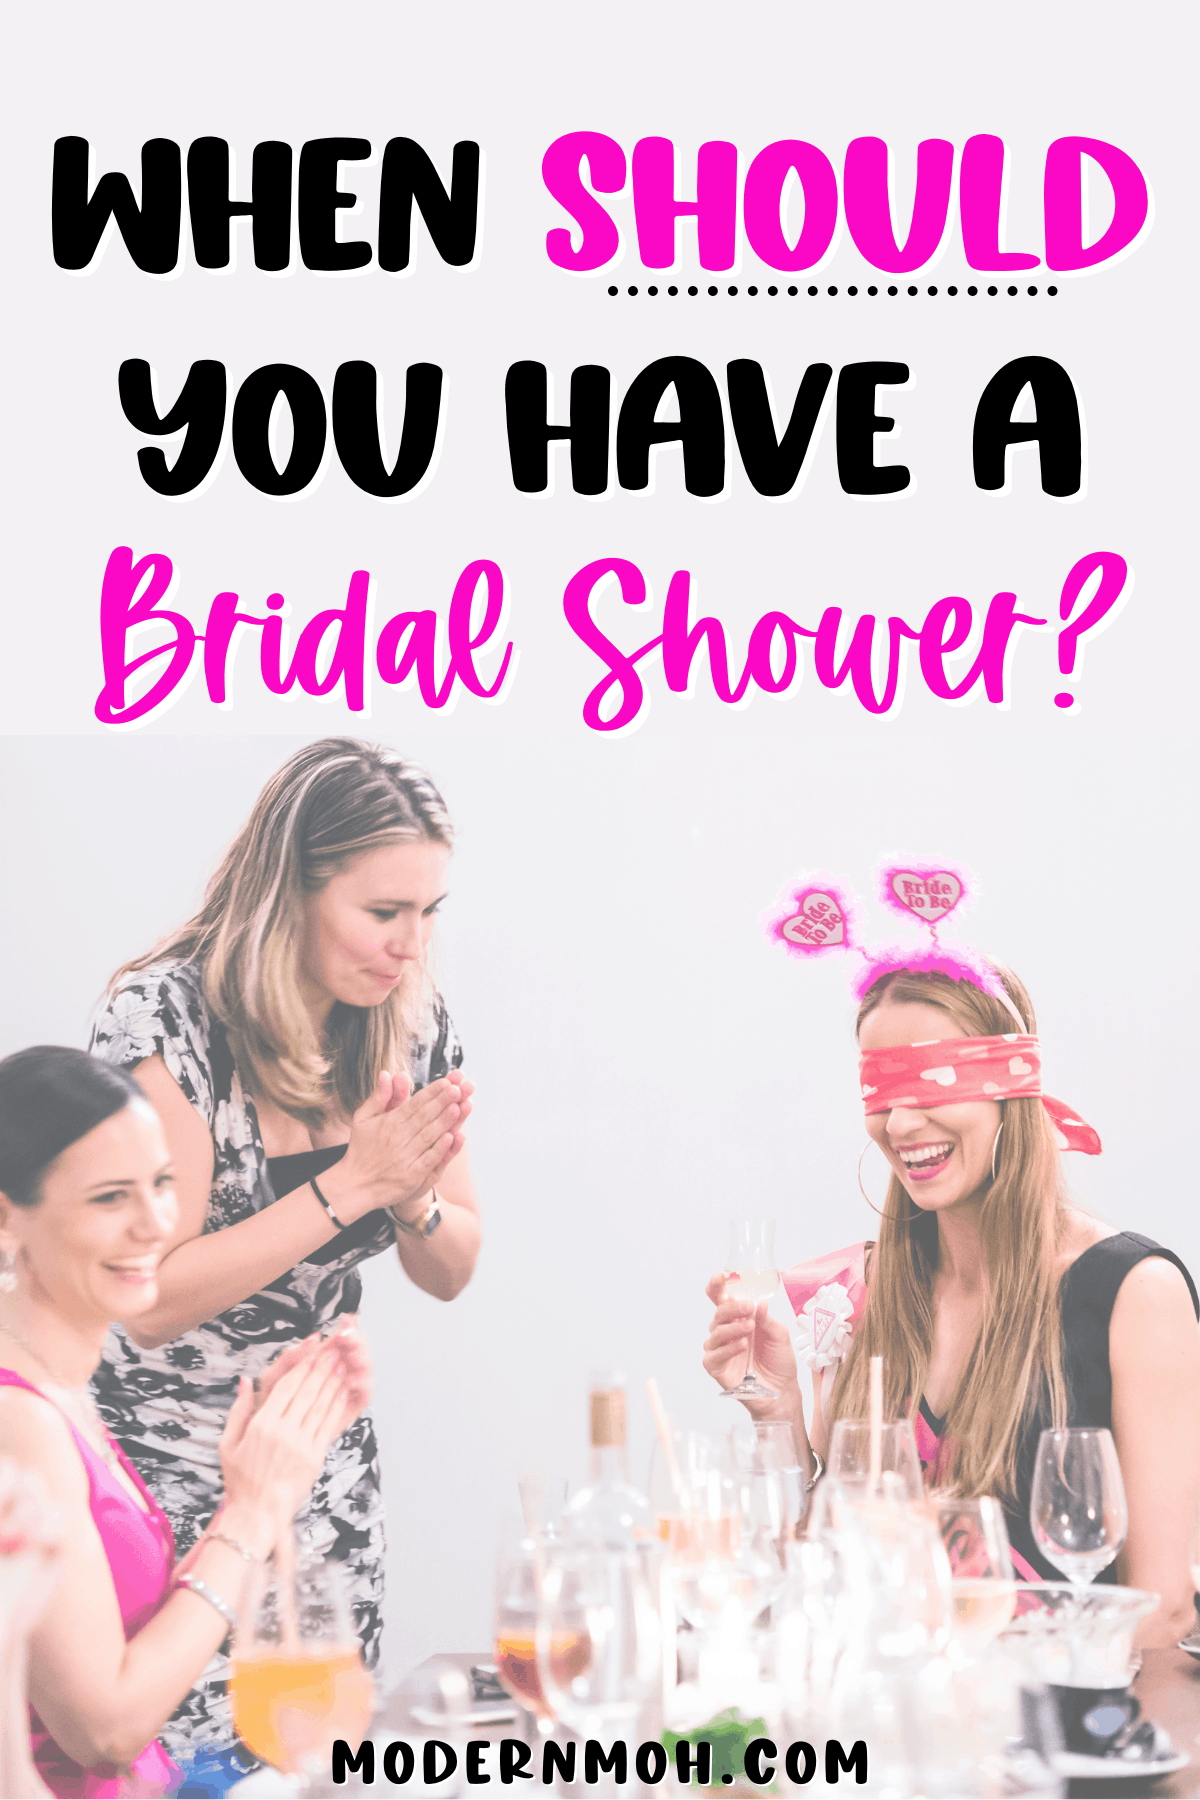 When Do You Have a Bridal Shower?